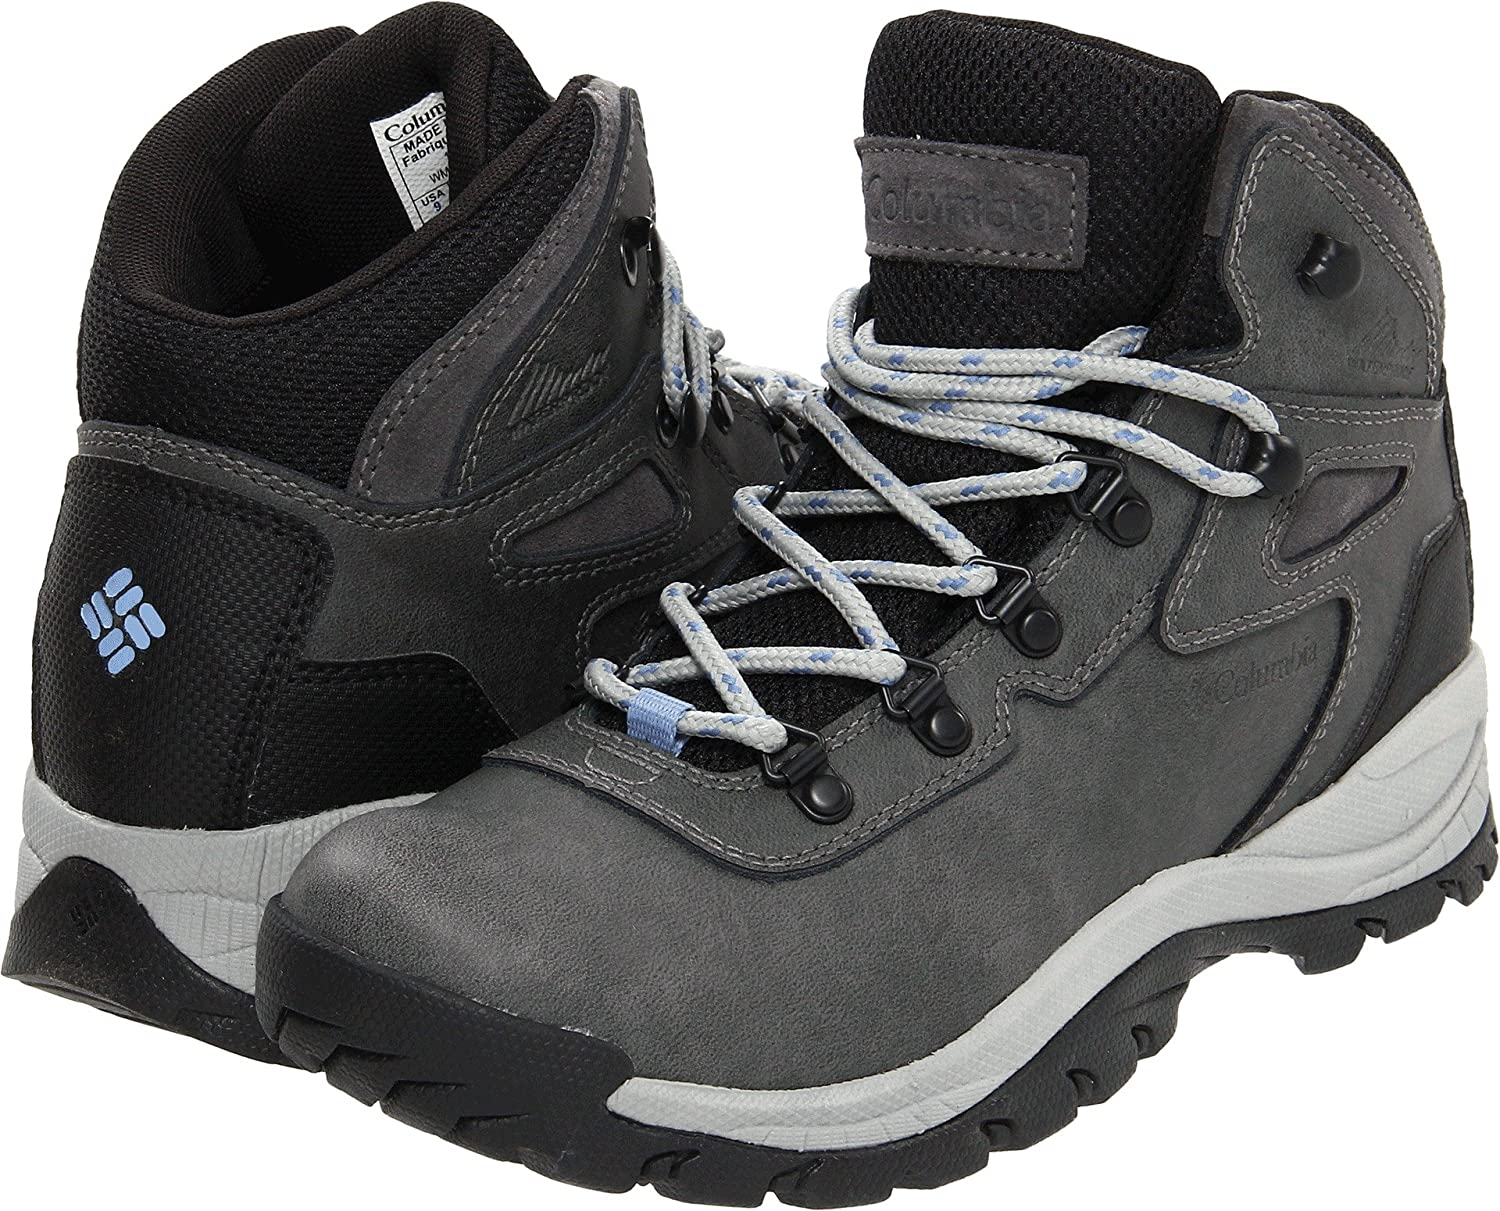 Columbia Women's Newton Ridge Plus Hiking Boot B073V8PTMG 9.5 B(M) US|Quarry, Cool Wave